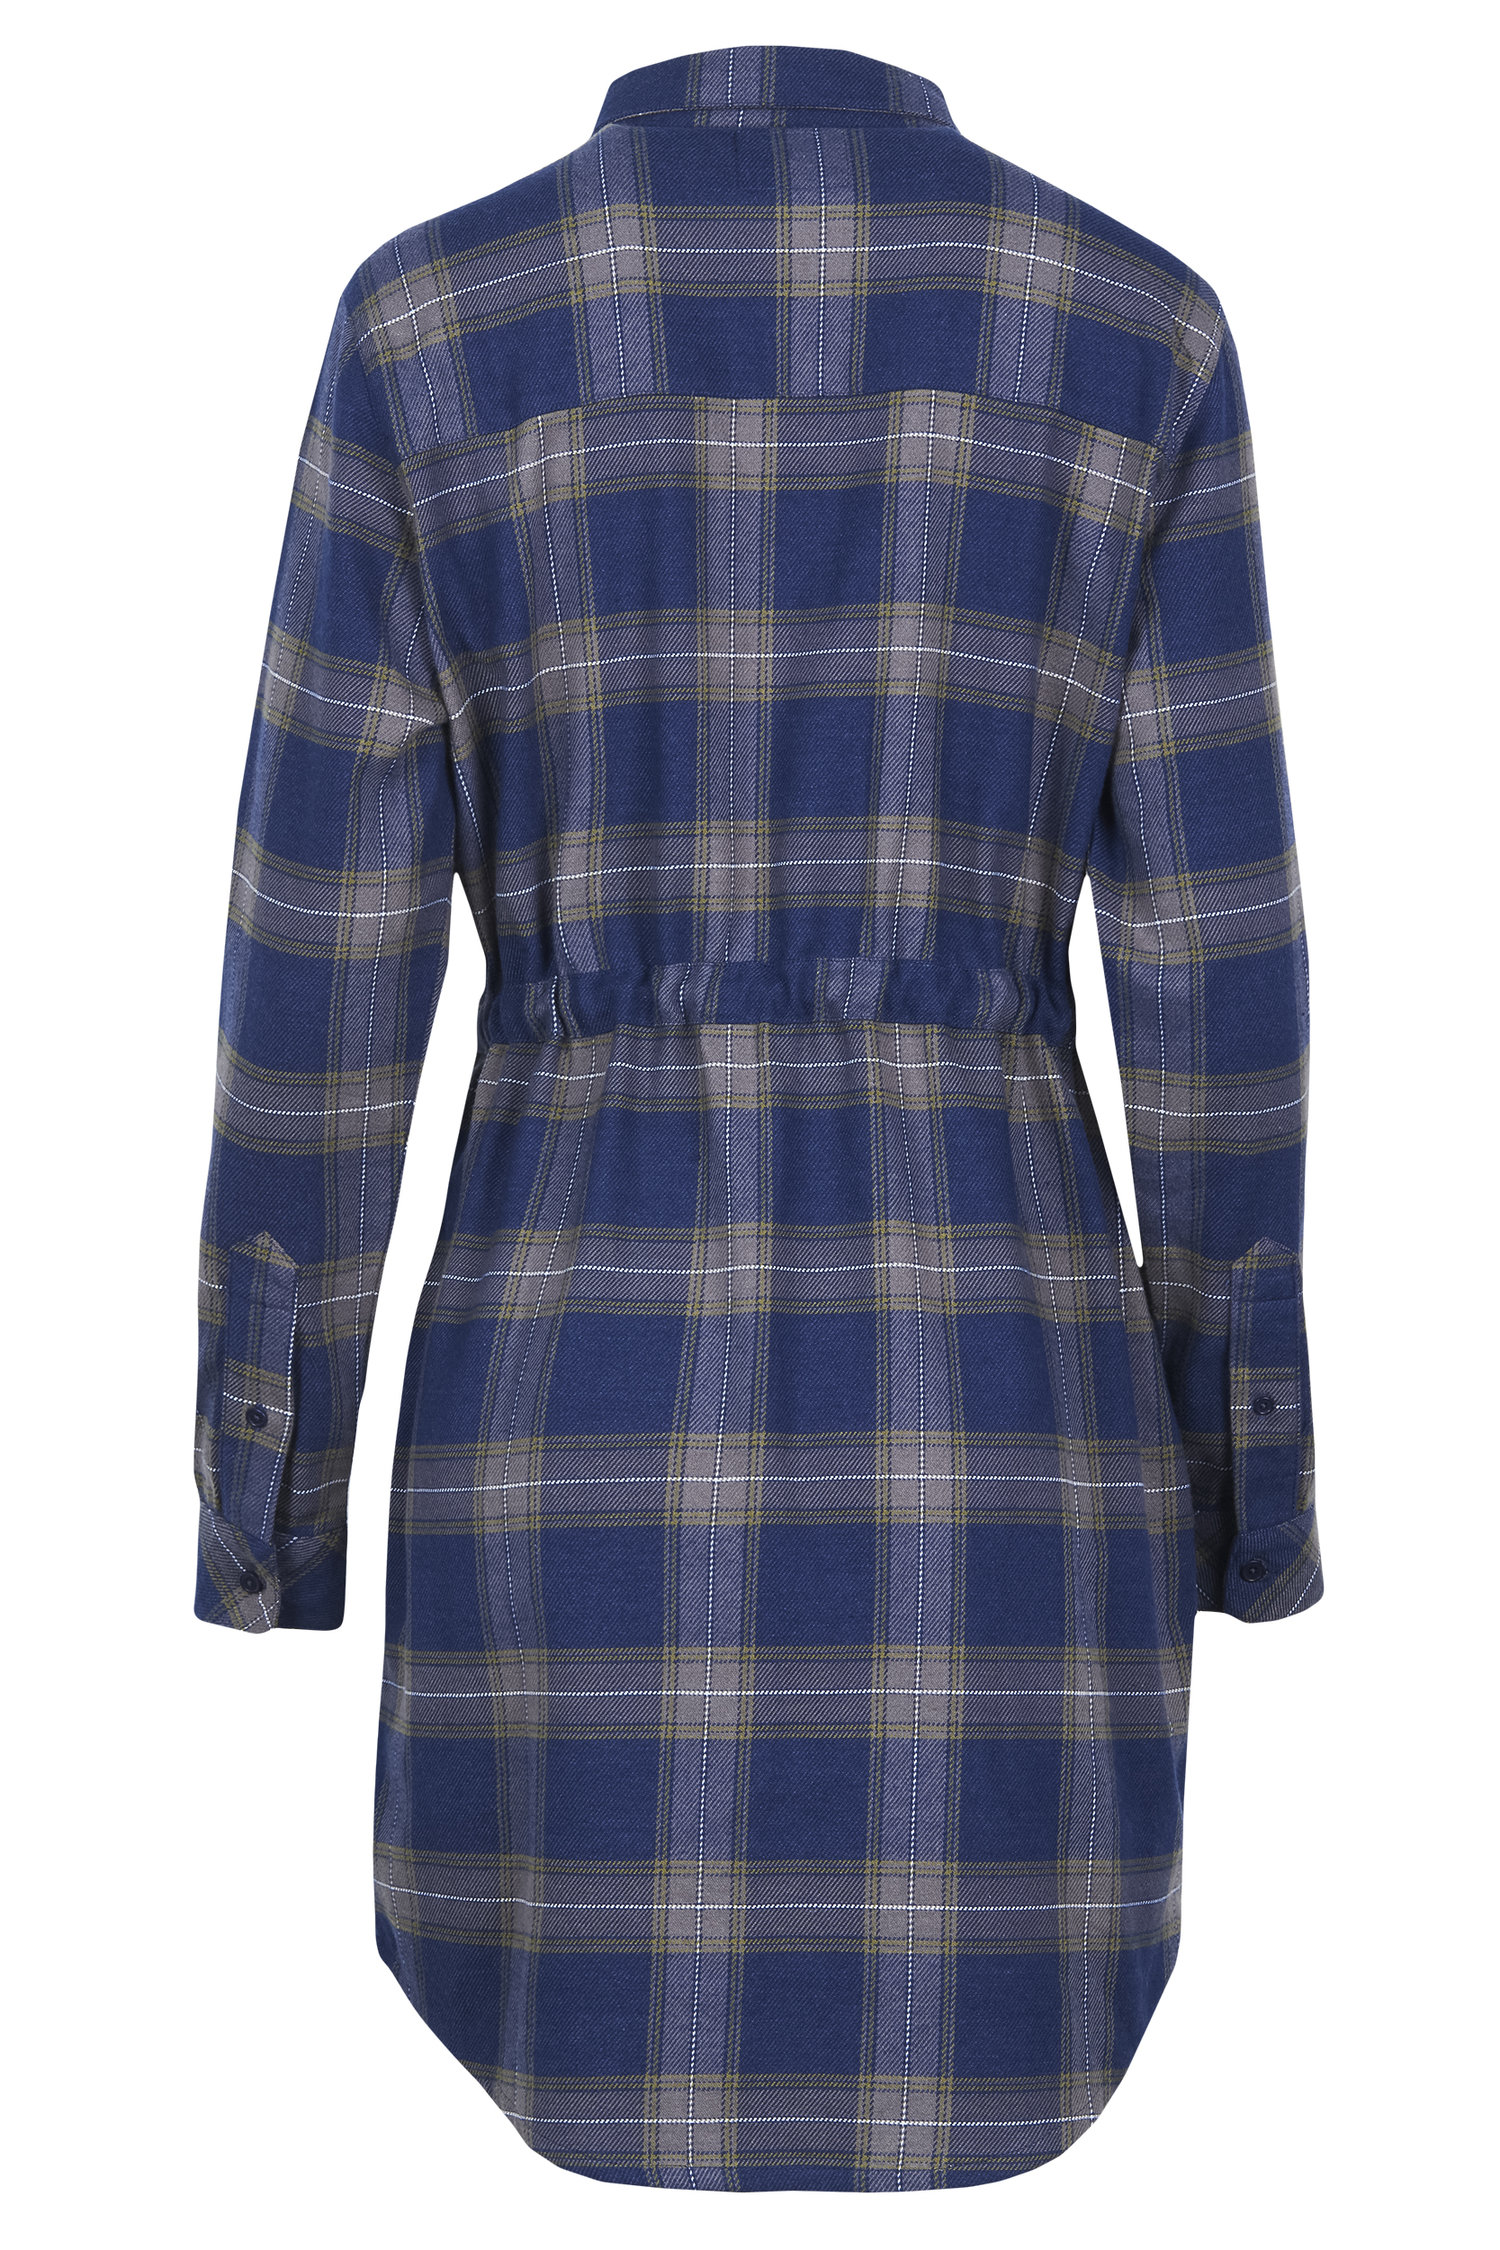 d3907ab04f United By Blue Moraine Flannel Dress — OUTSIDER